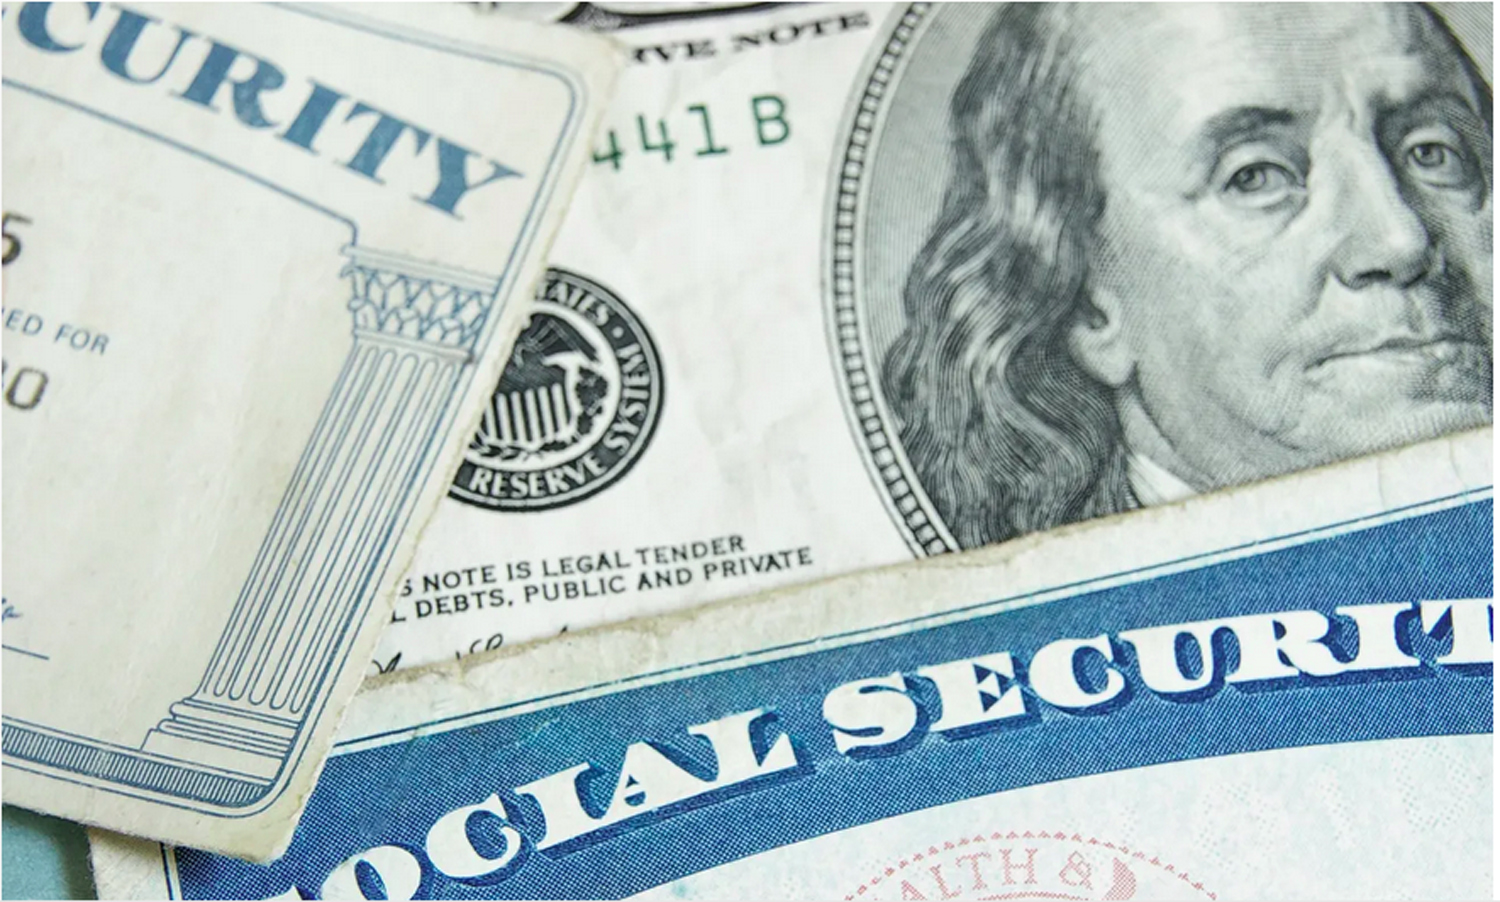 Money sitting on top of Social Security check.